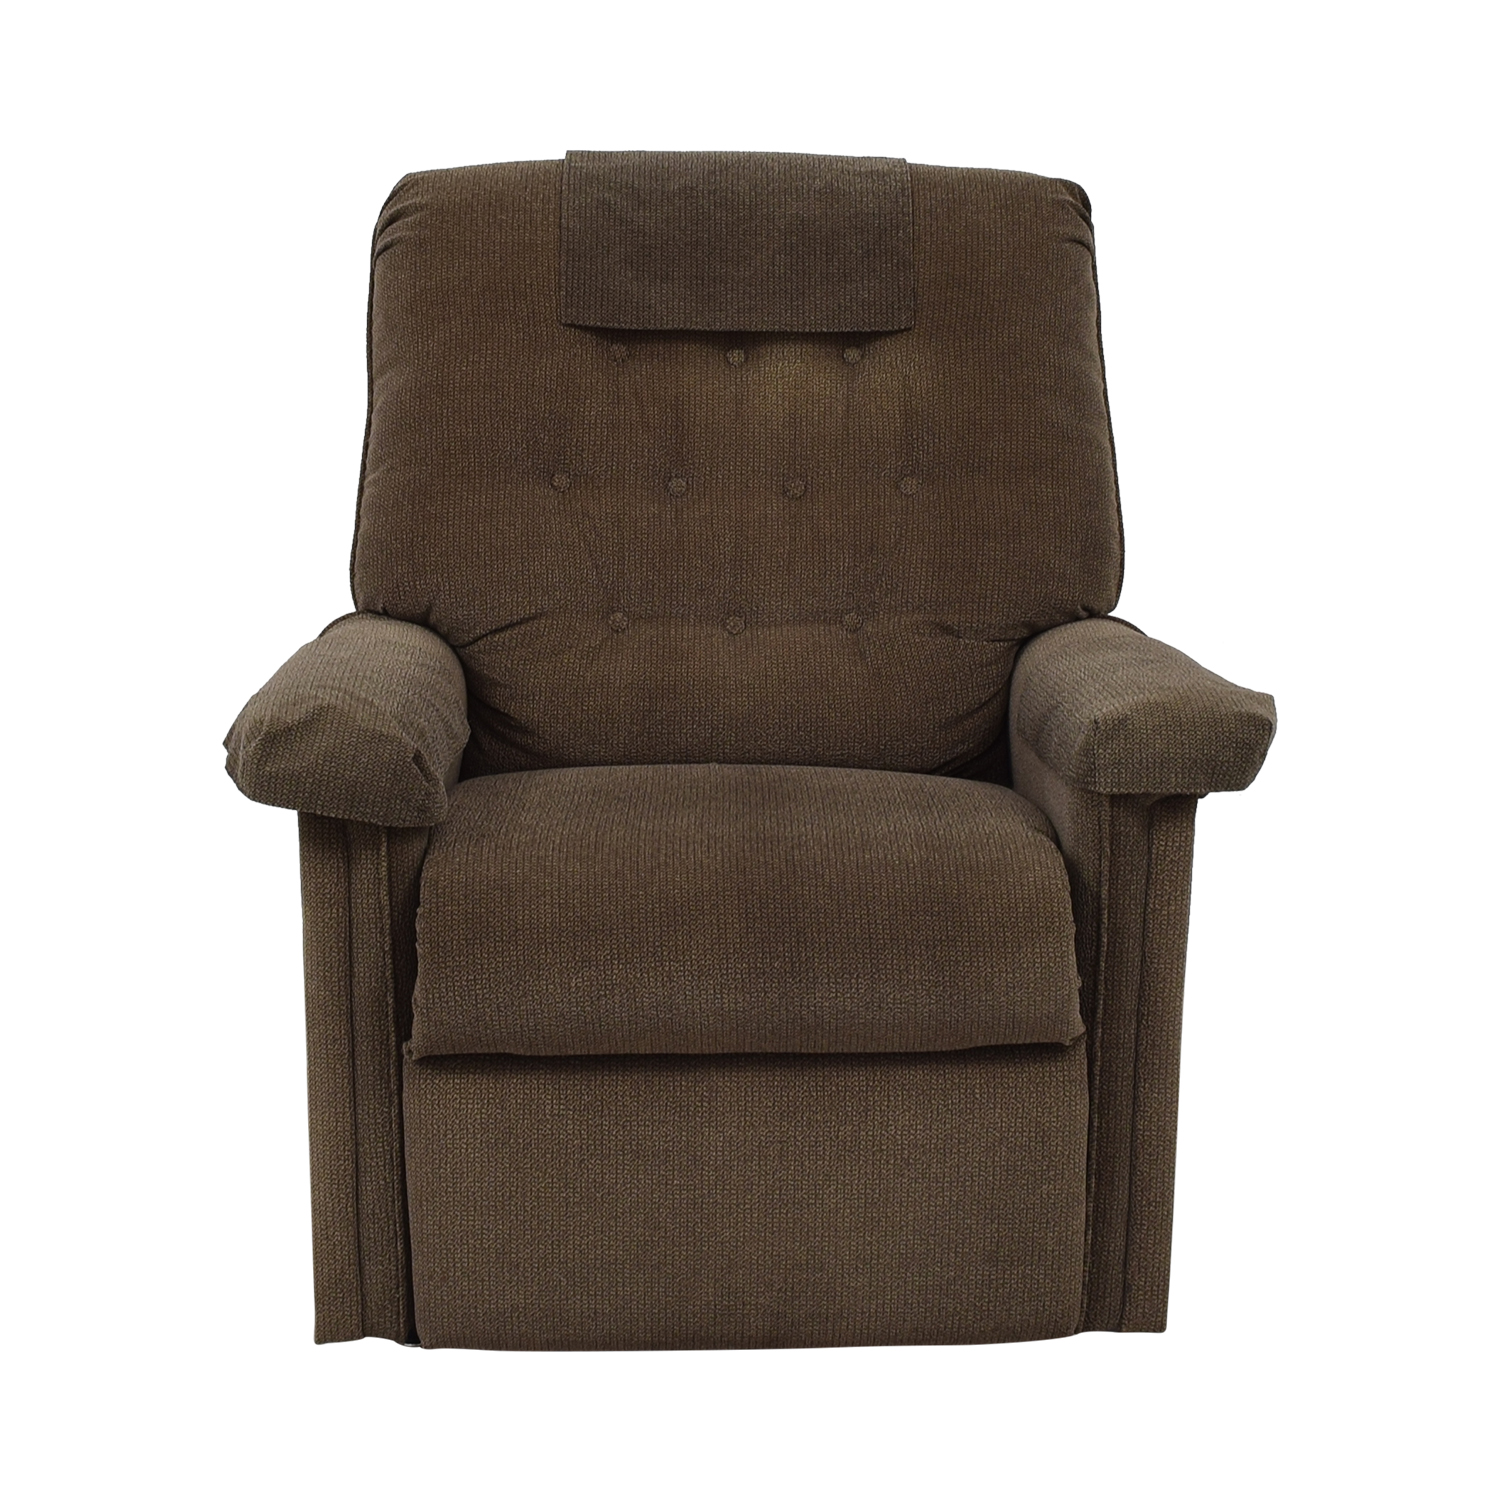 buy Pride Mobility Brown Recliner Pride Mobility